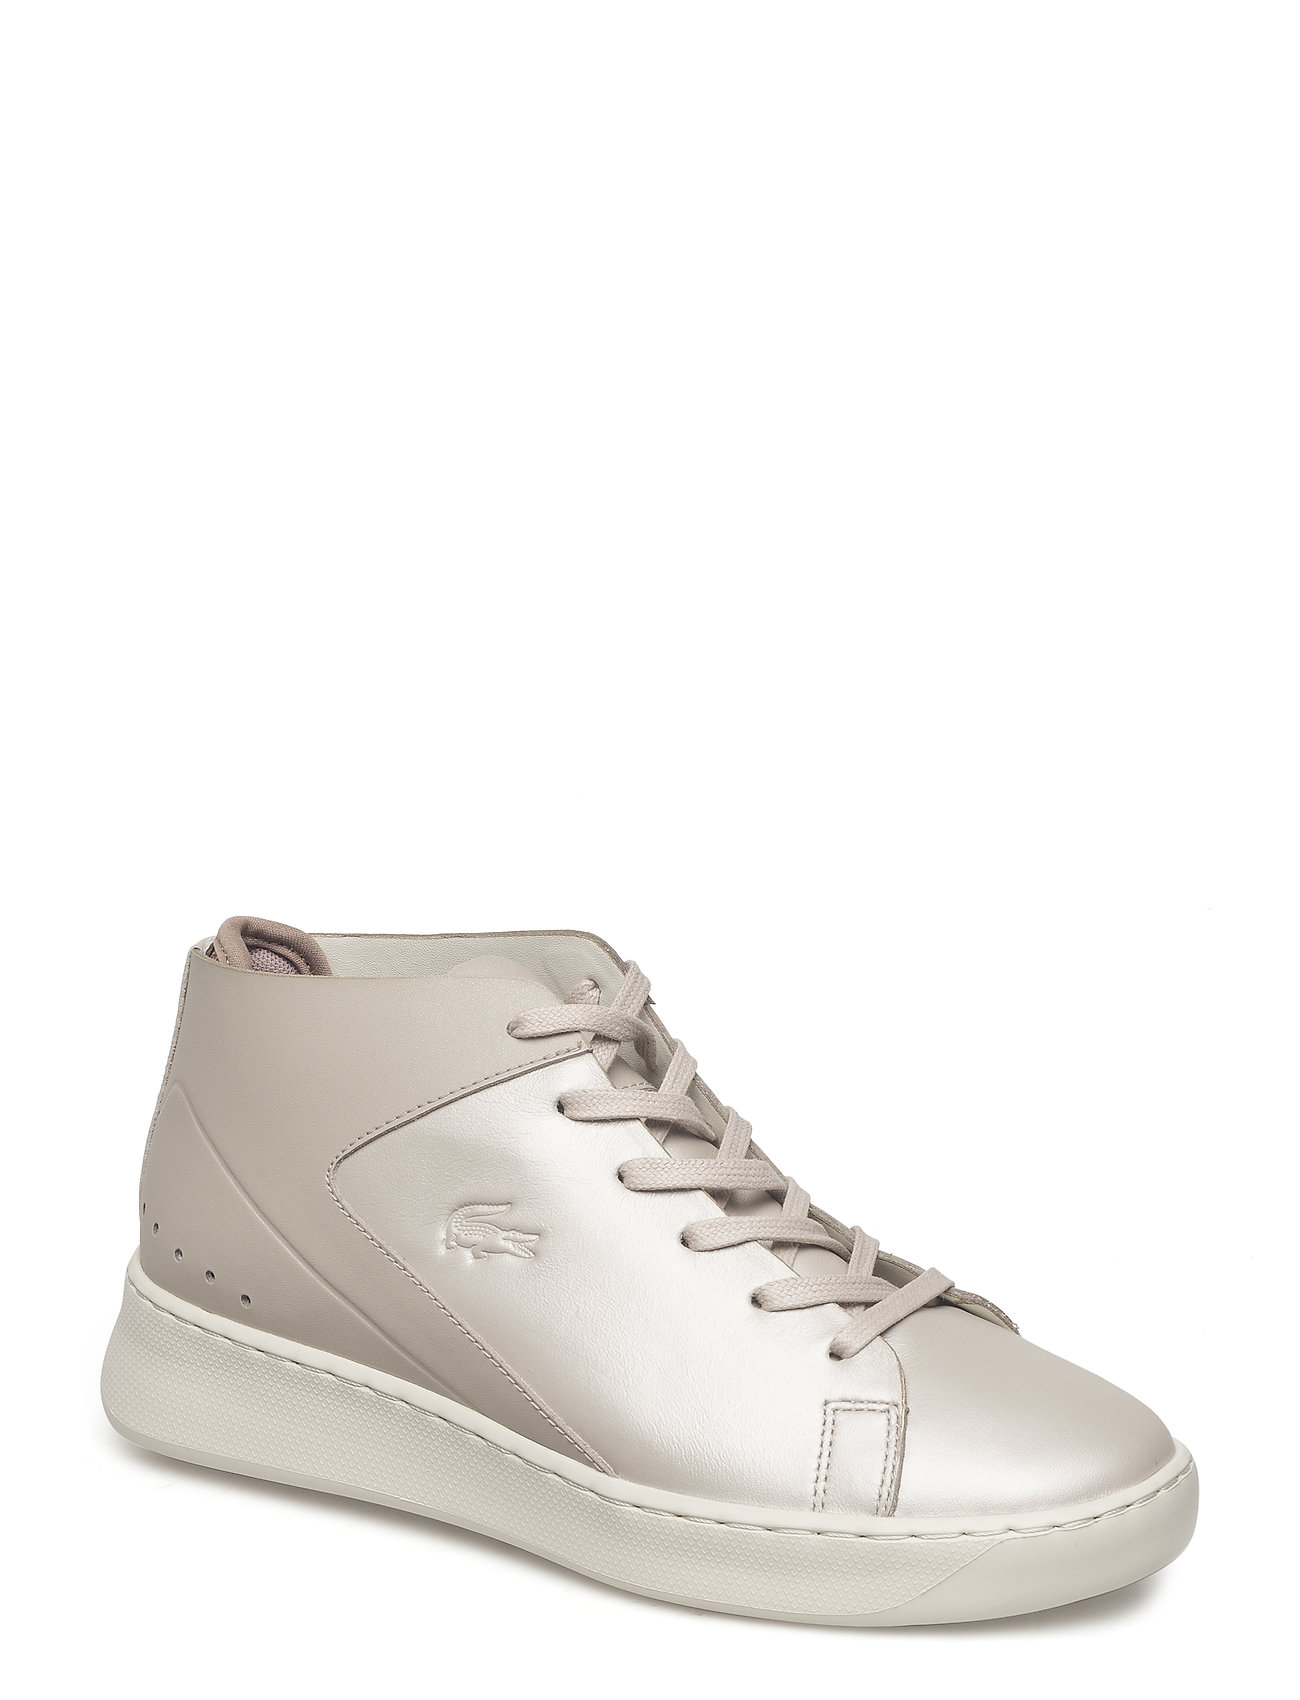 Image of Eyyla Chukka 318 2 High-top Sneakers Sølv Lacoste Shoes (3333150165)